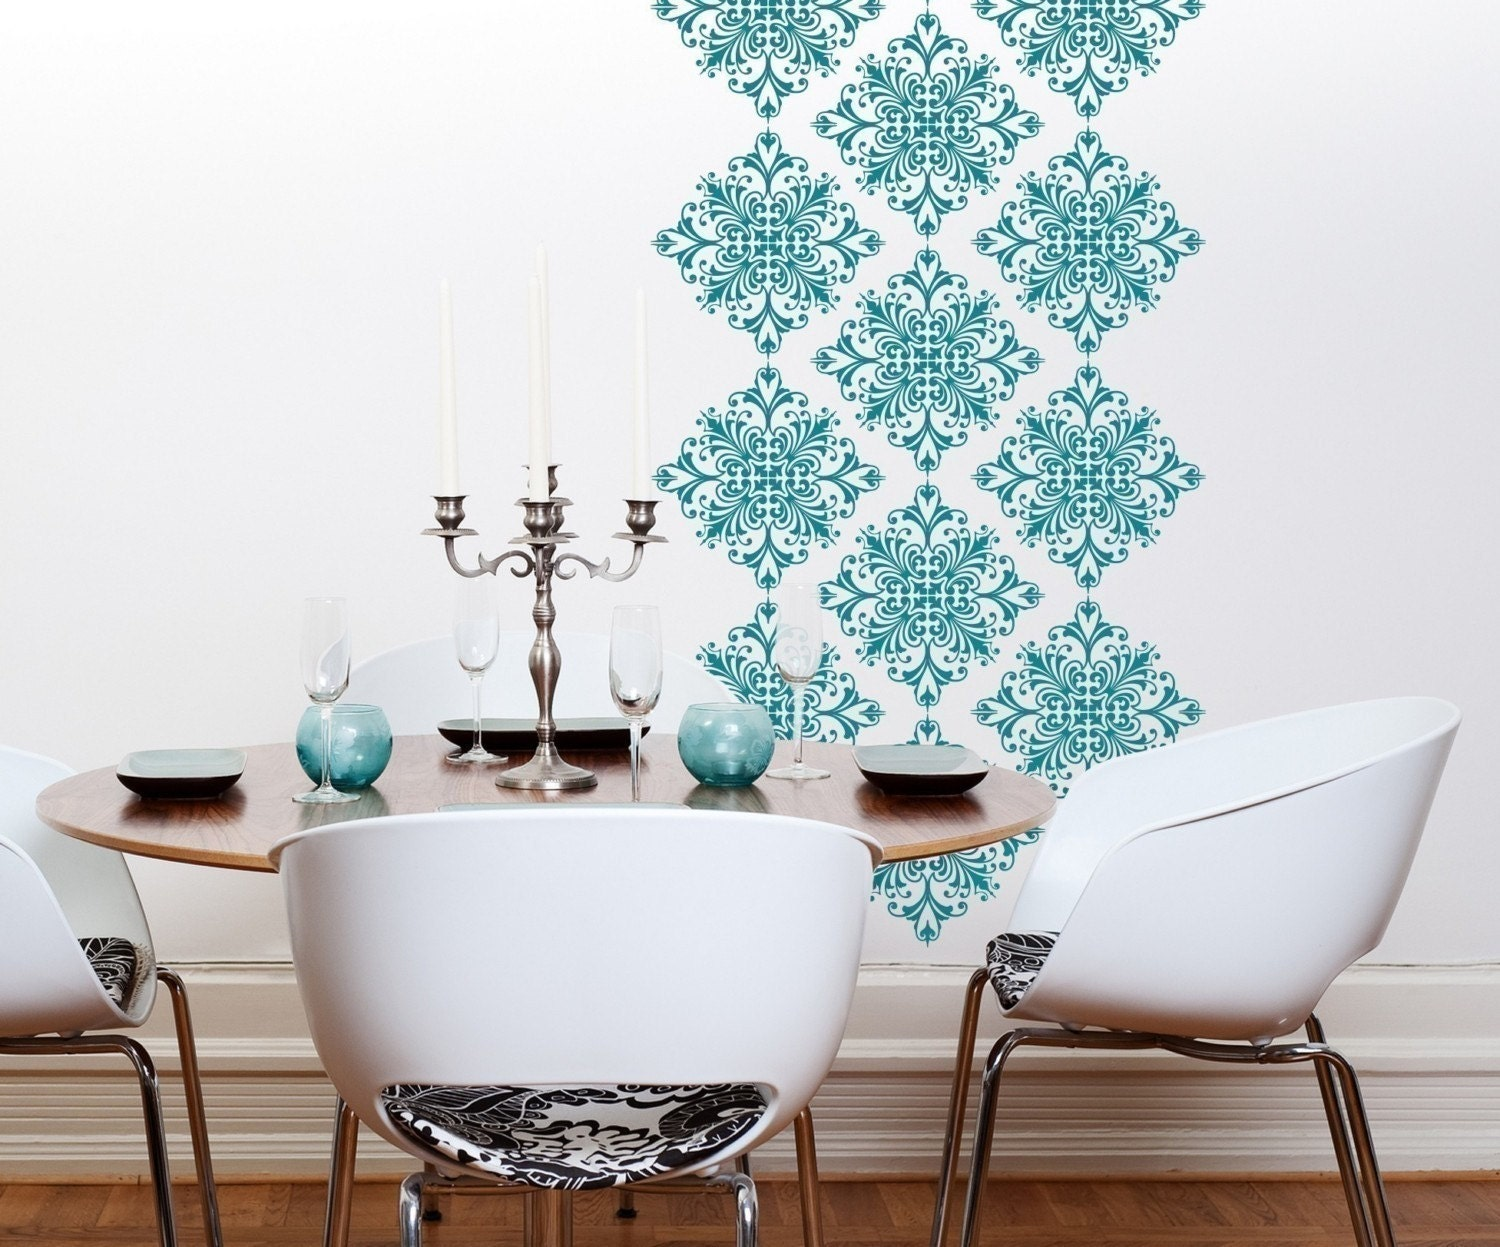 Vinyl Wall Decals Scroll Damask Wall Pattern Graphics   Custom Vinyl Wall  Decals Damask